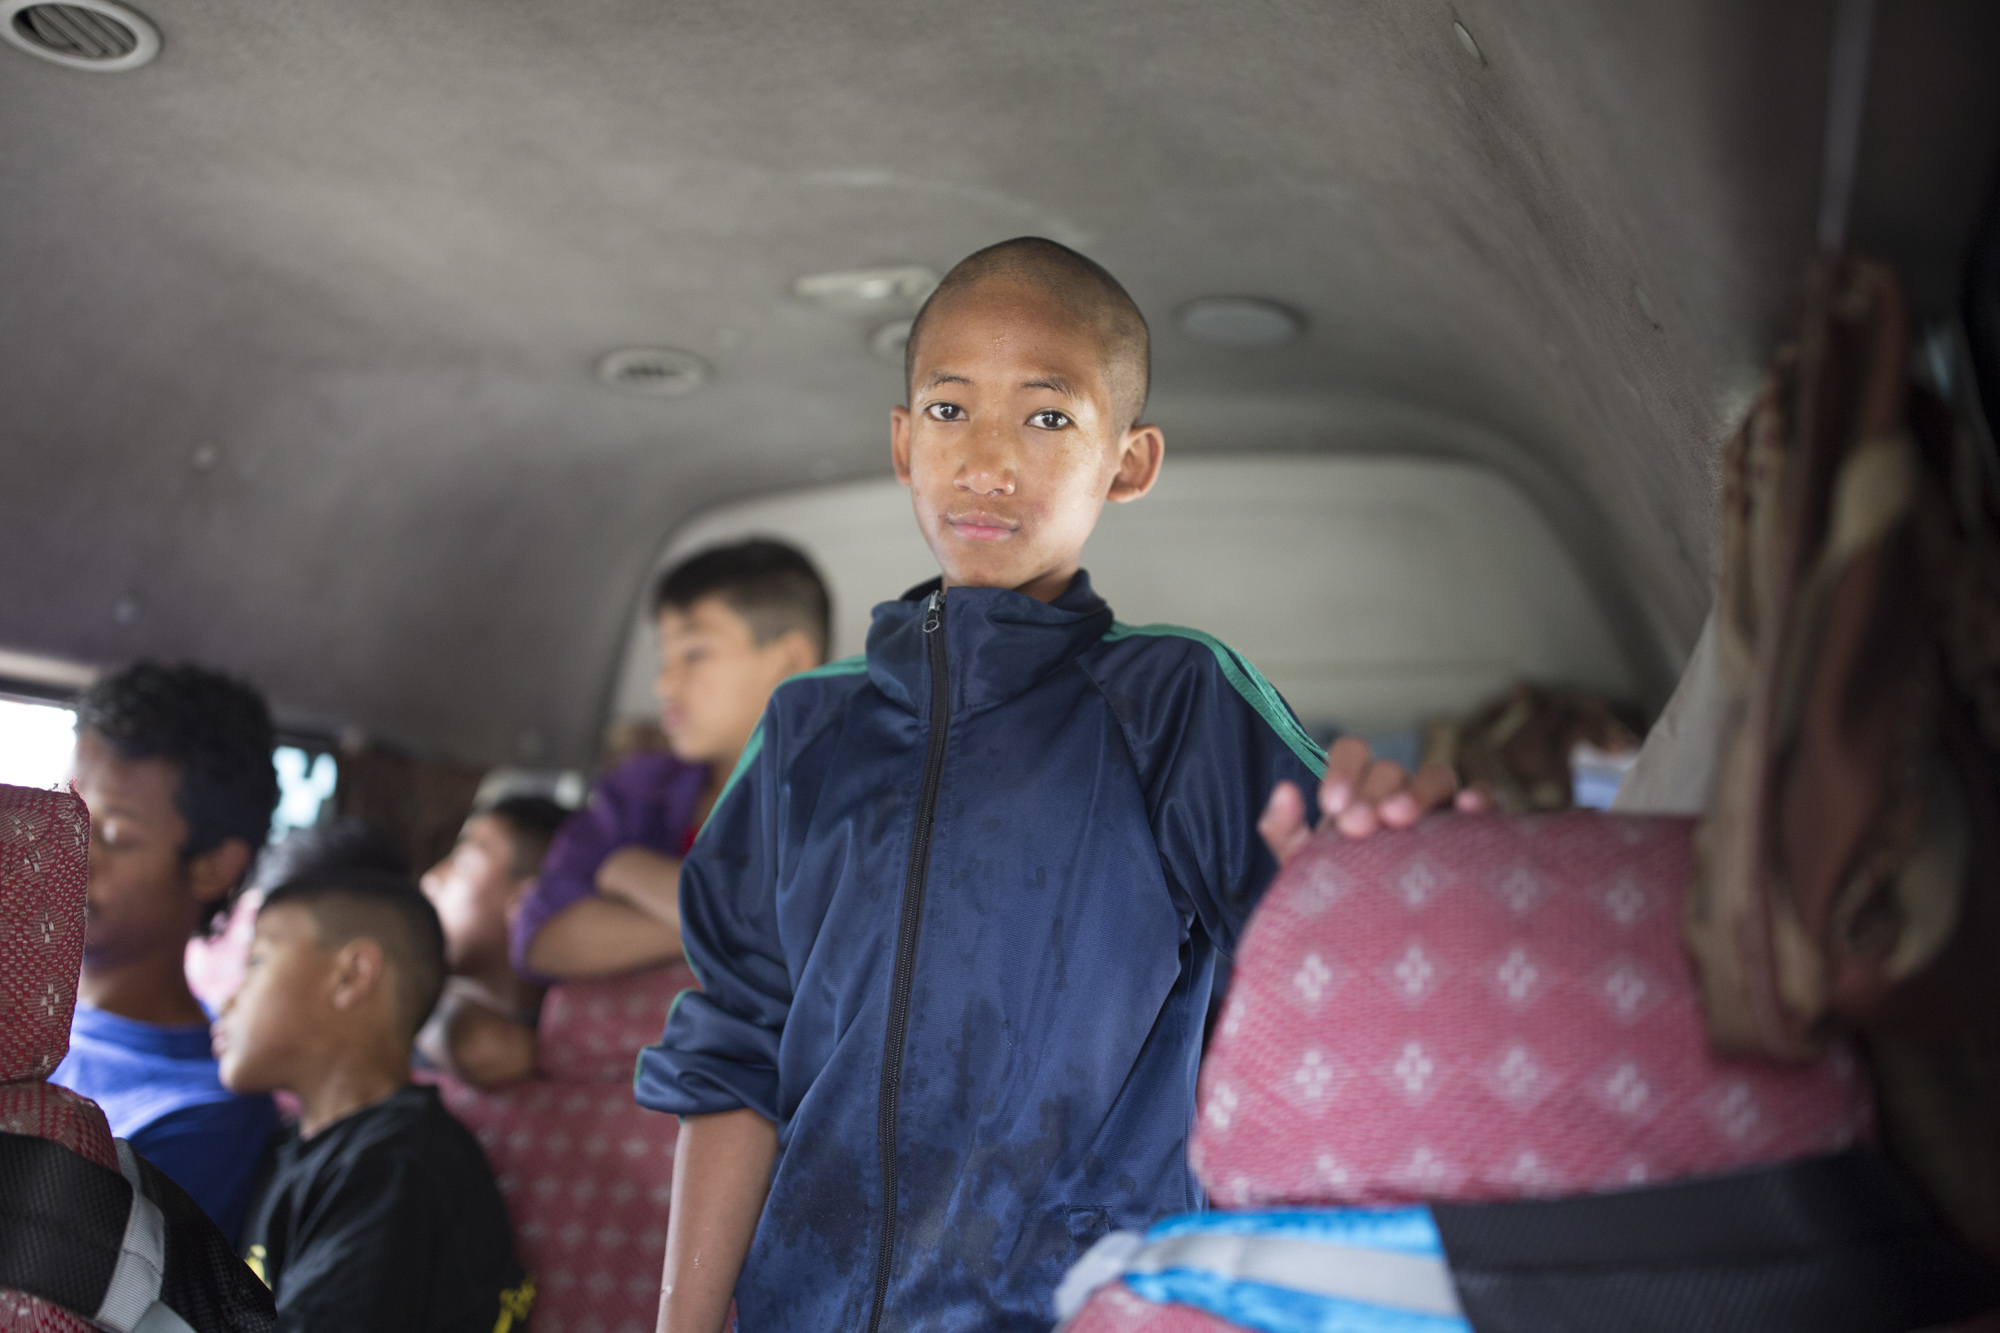 Ready for an special excursion to Pokhara with the boys from TBU house, his first ever trip out of kathmandu.